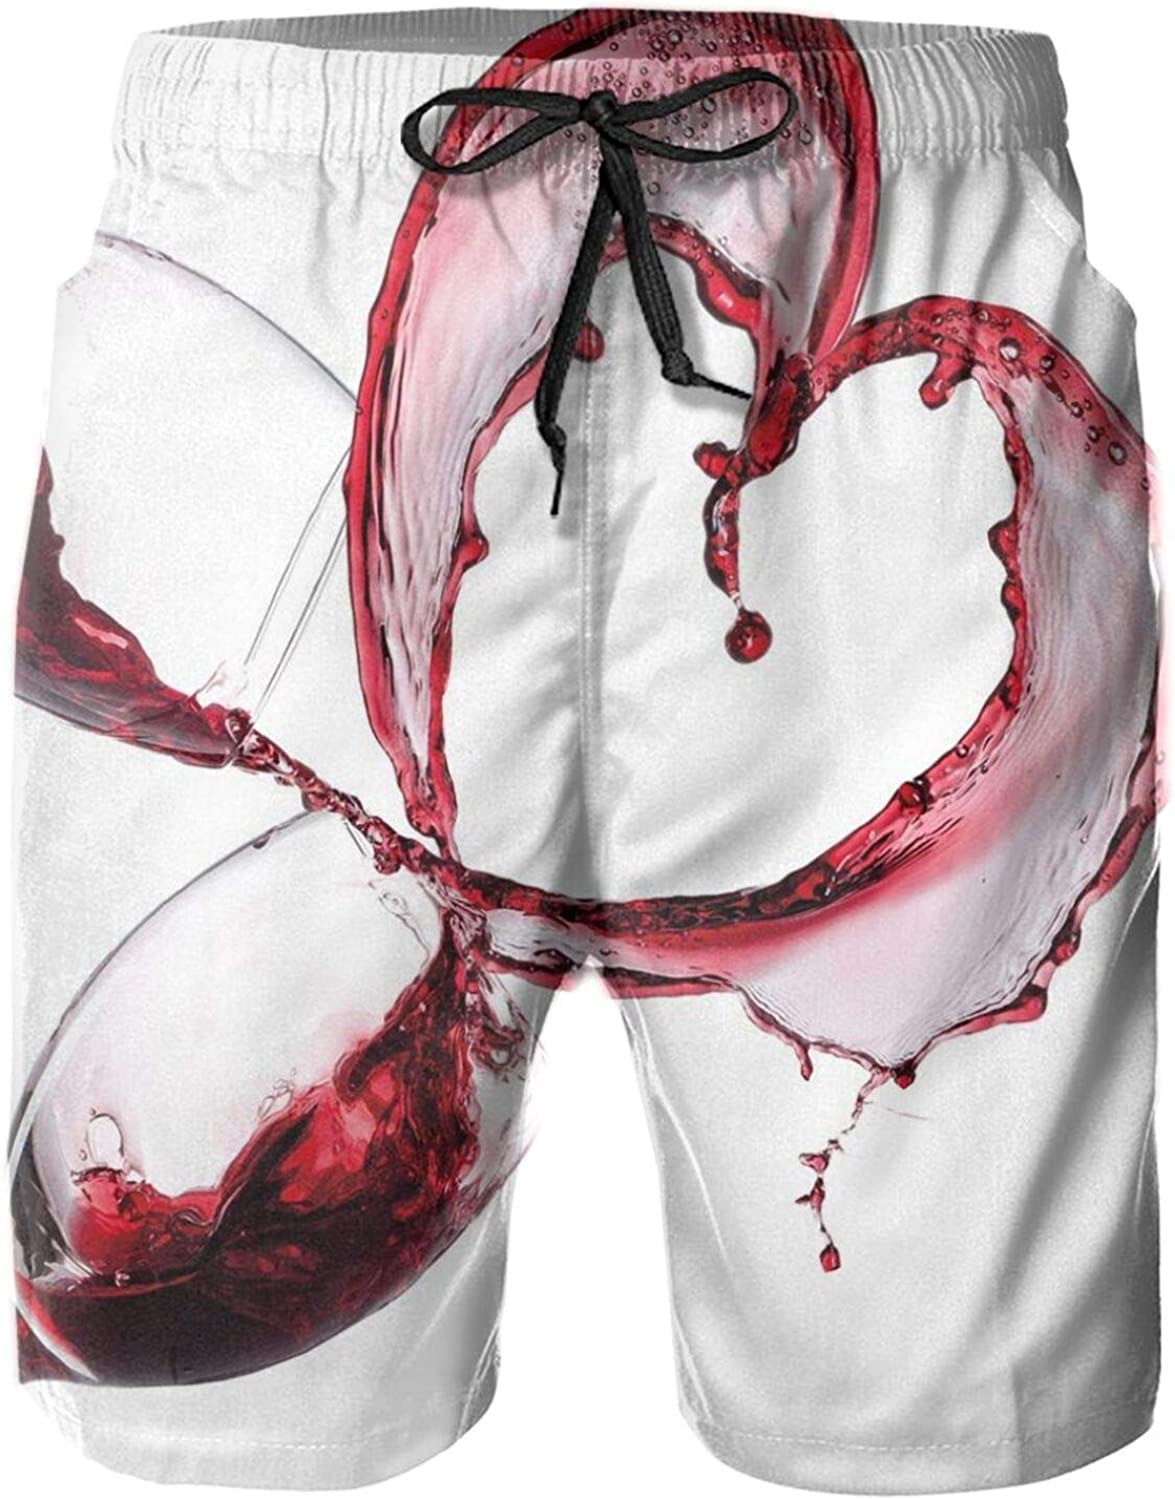 Heart with Spilling Red Wine in Glasses Romantic Love Valentines Day Concept Drawstring Waist Beach Shorts for Men Swim Trucks Board Shorts with Mesh Lining,L